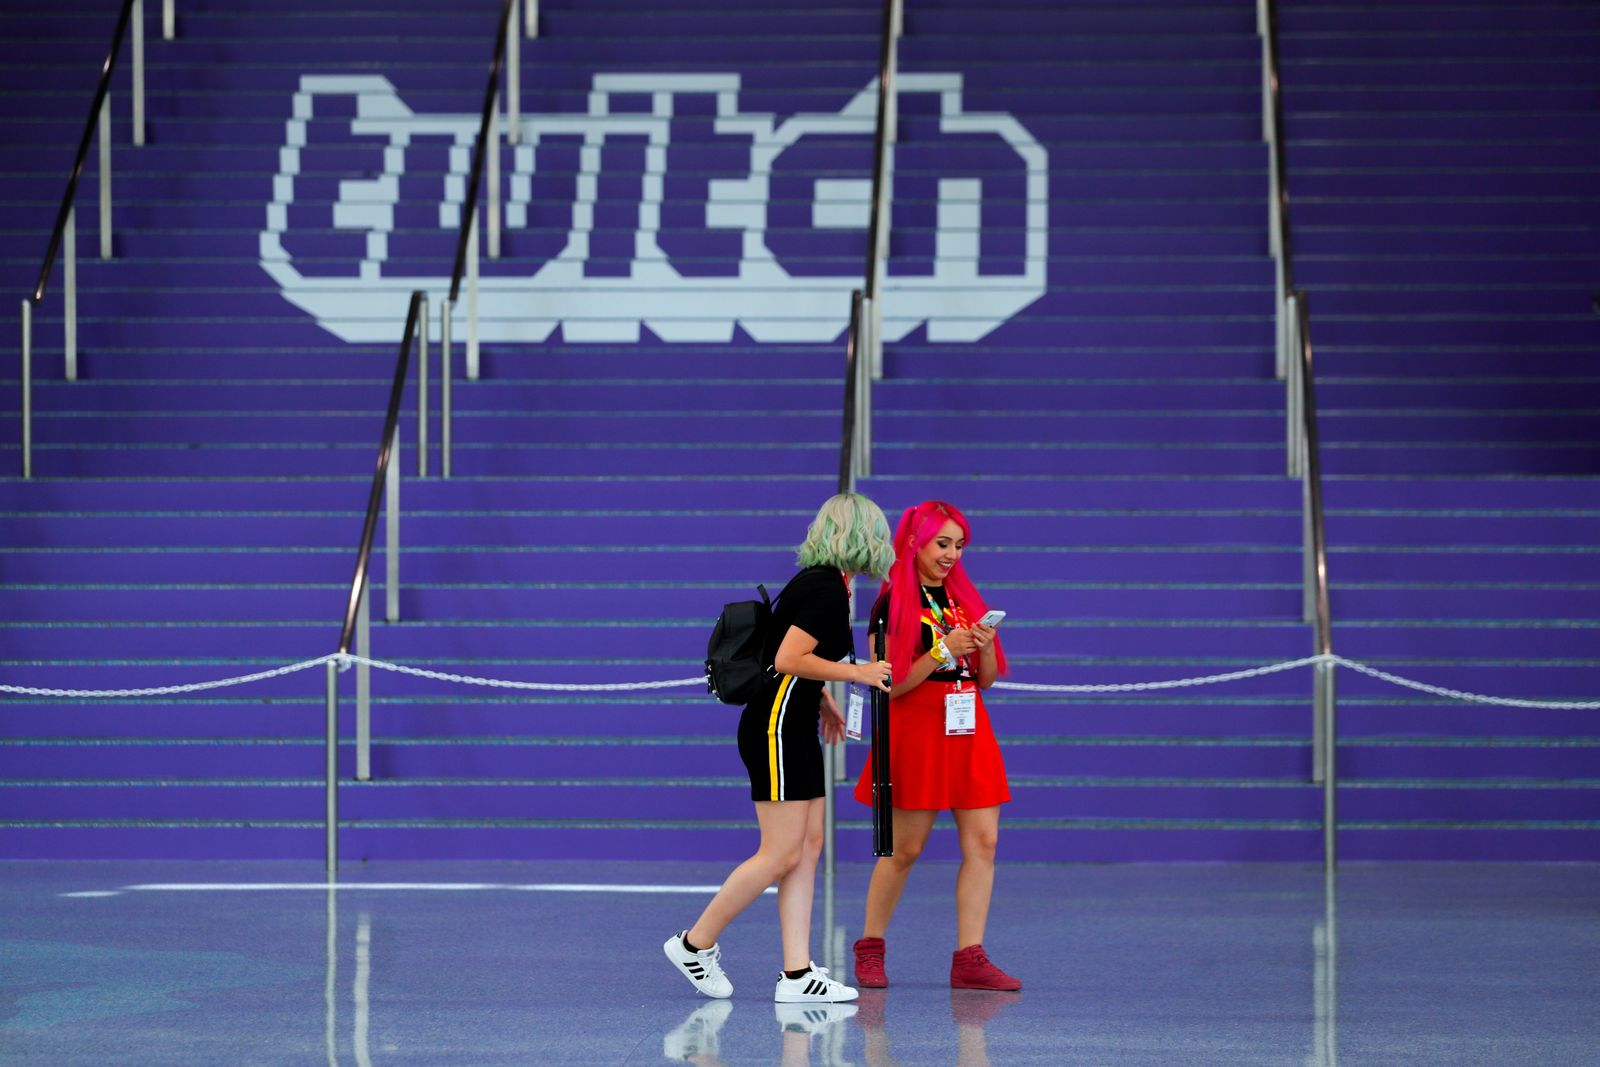 FILE PHOTO: A Twitch logo is displayed at a video games expo